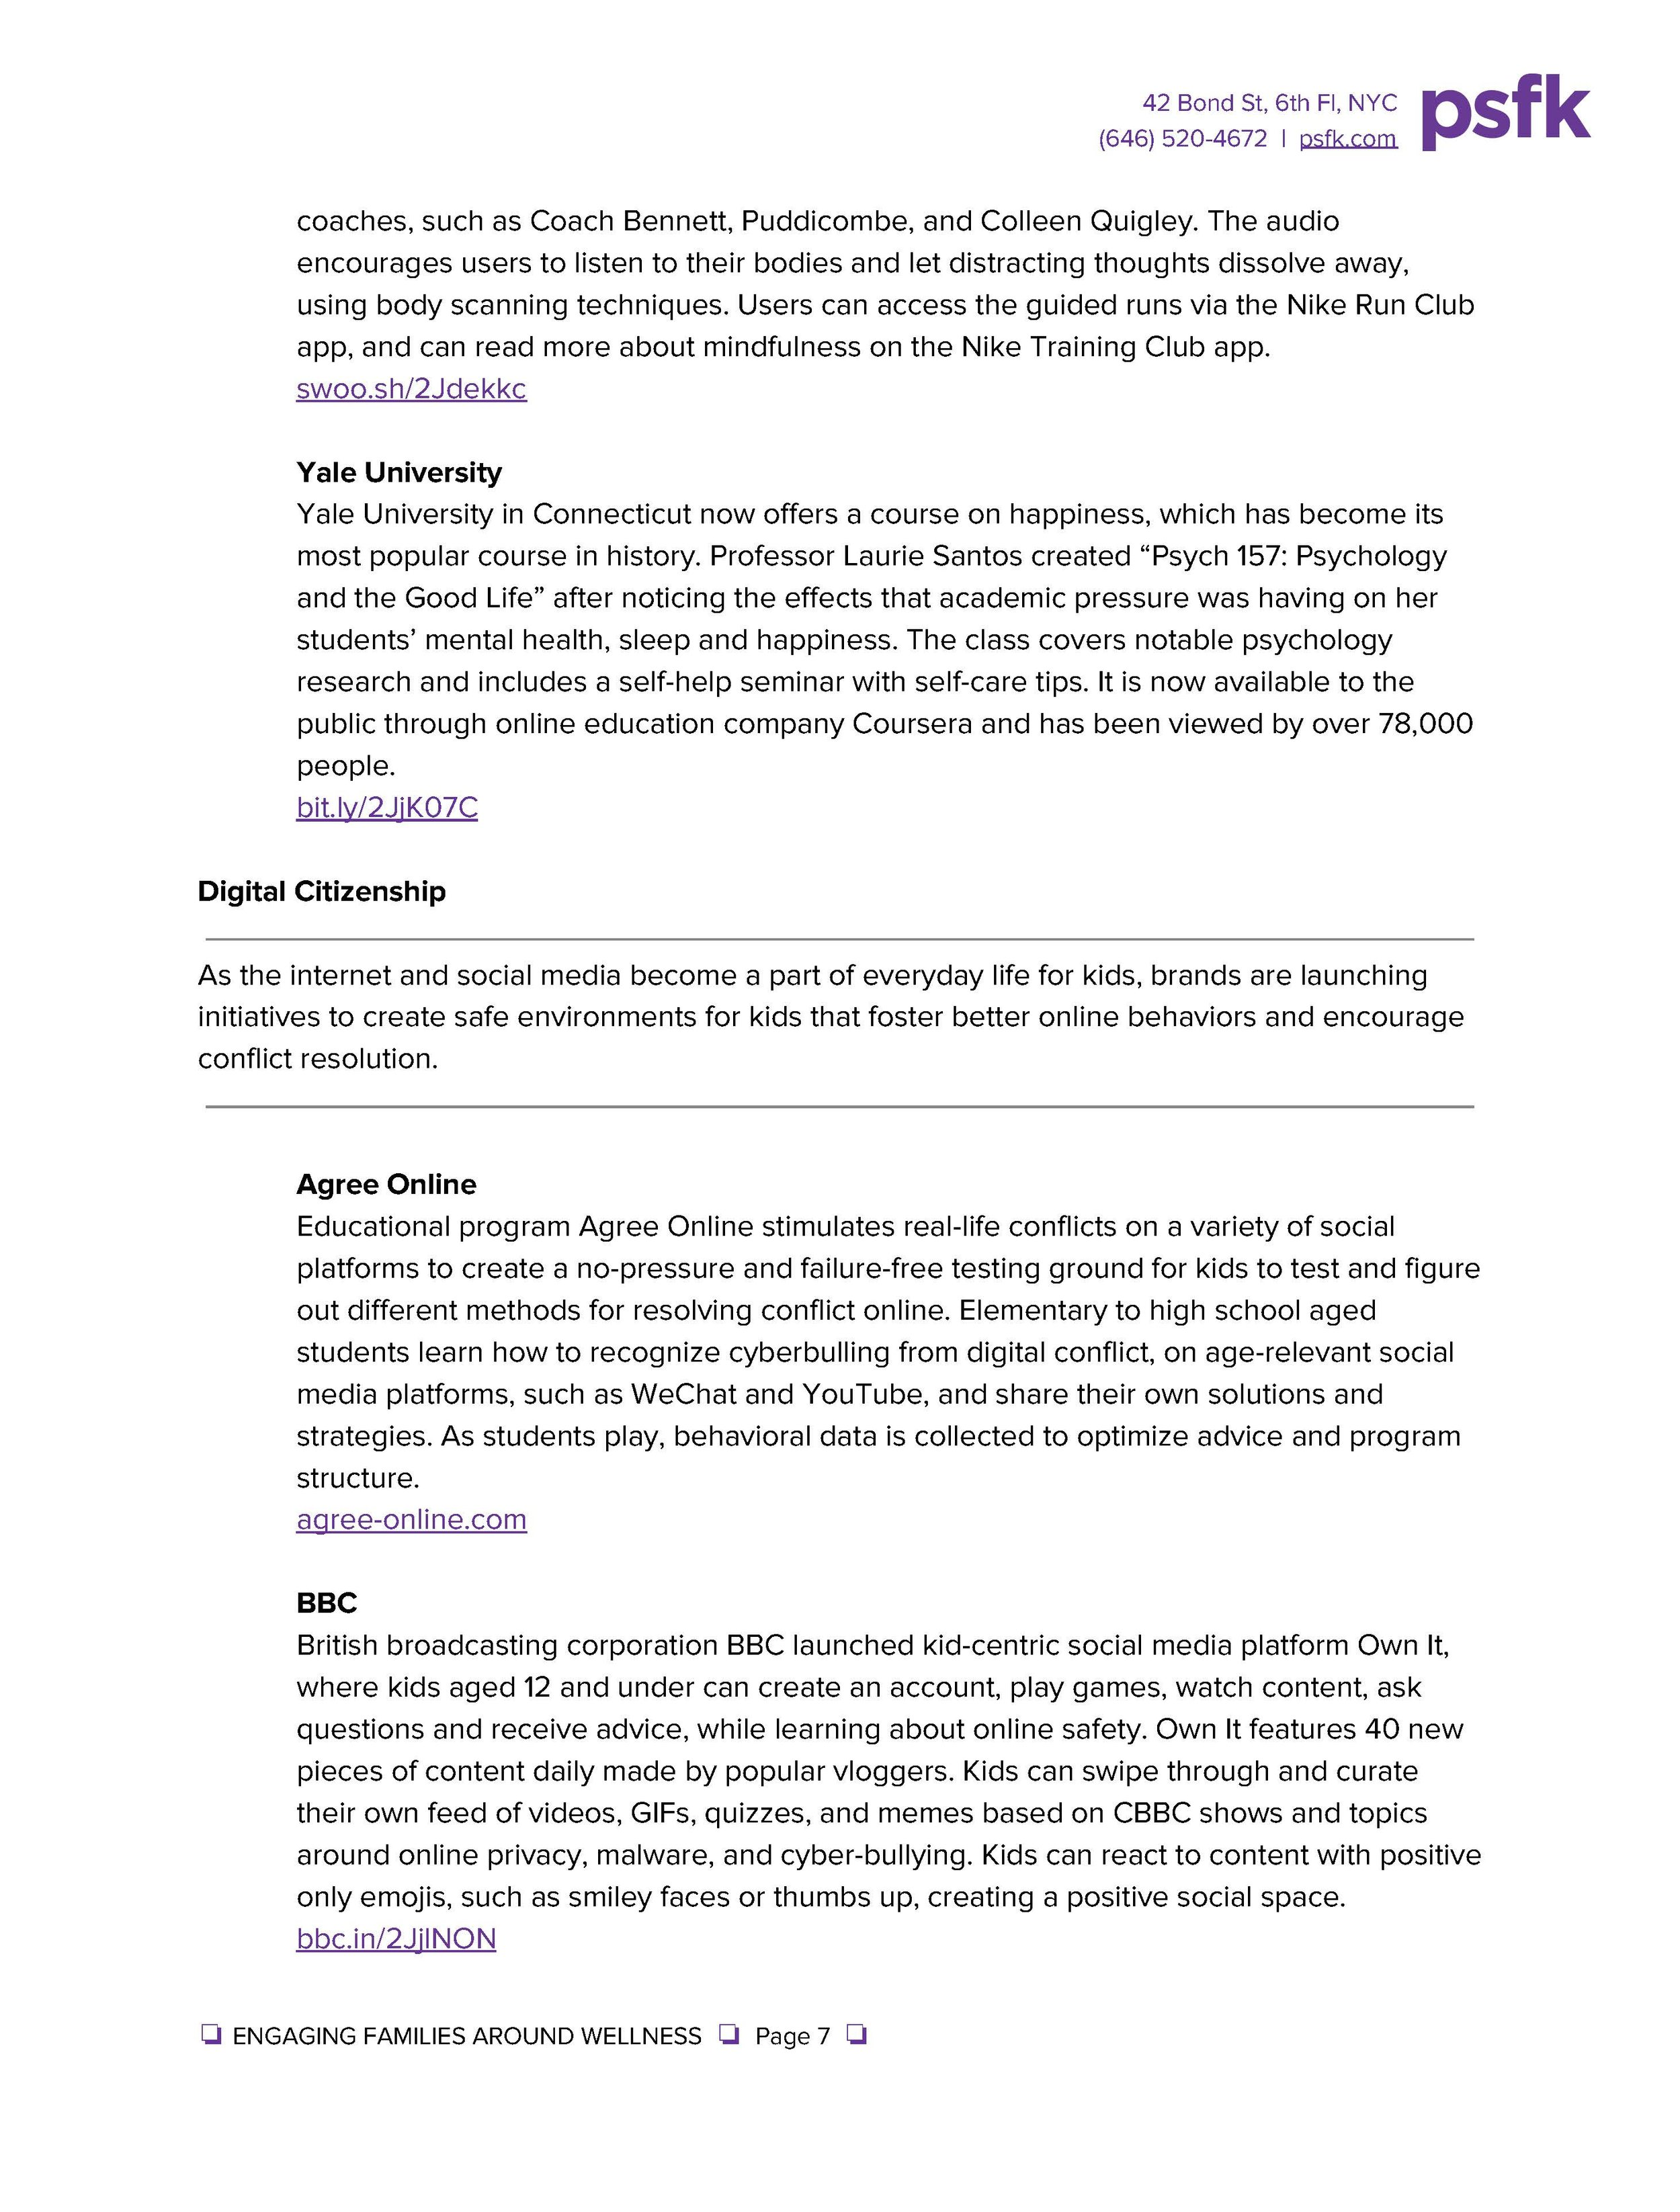 PSFK_Paper_Engaging_Families_Wellness_Page_07.jpg